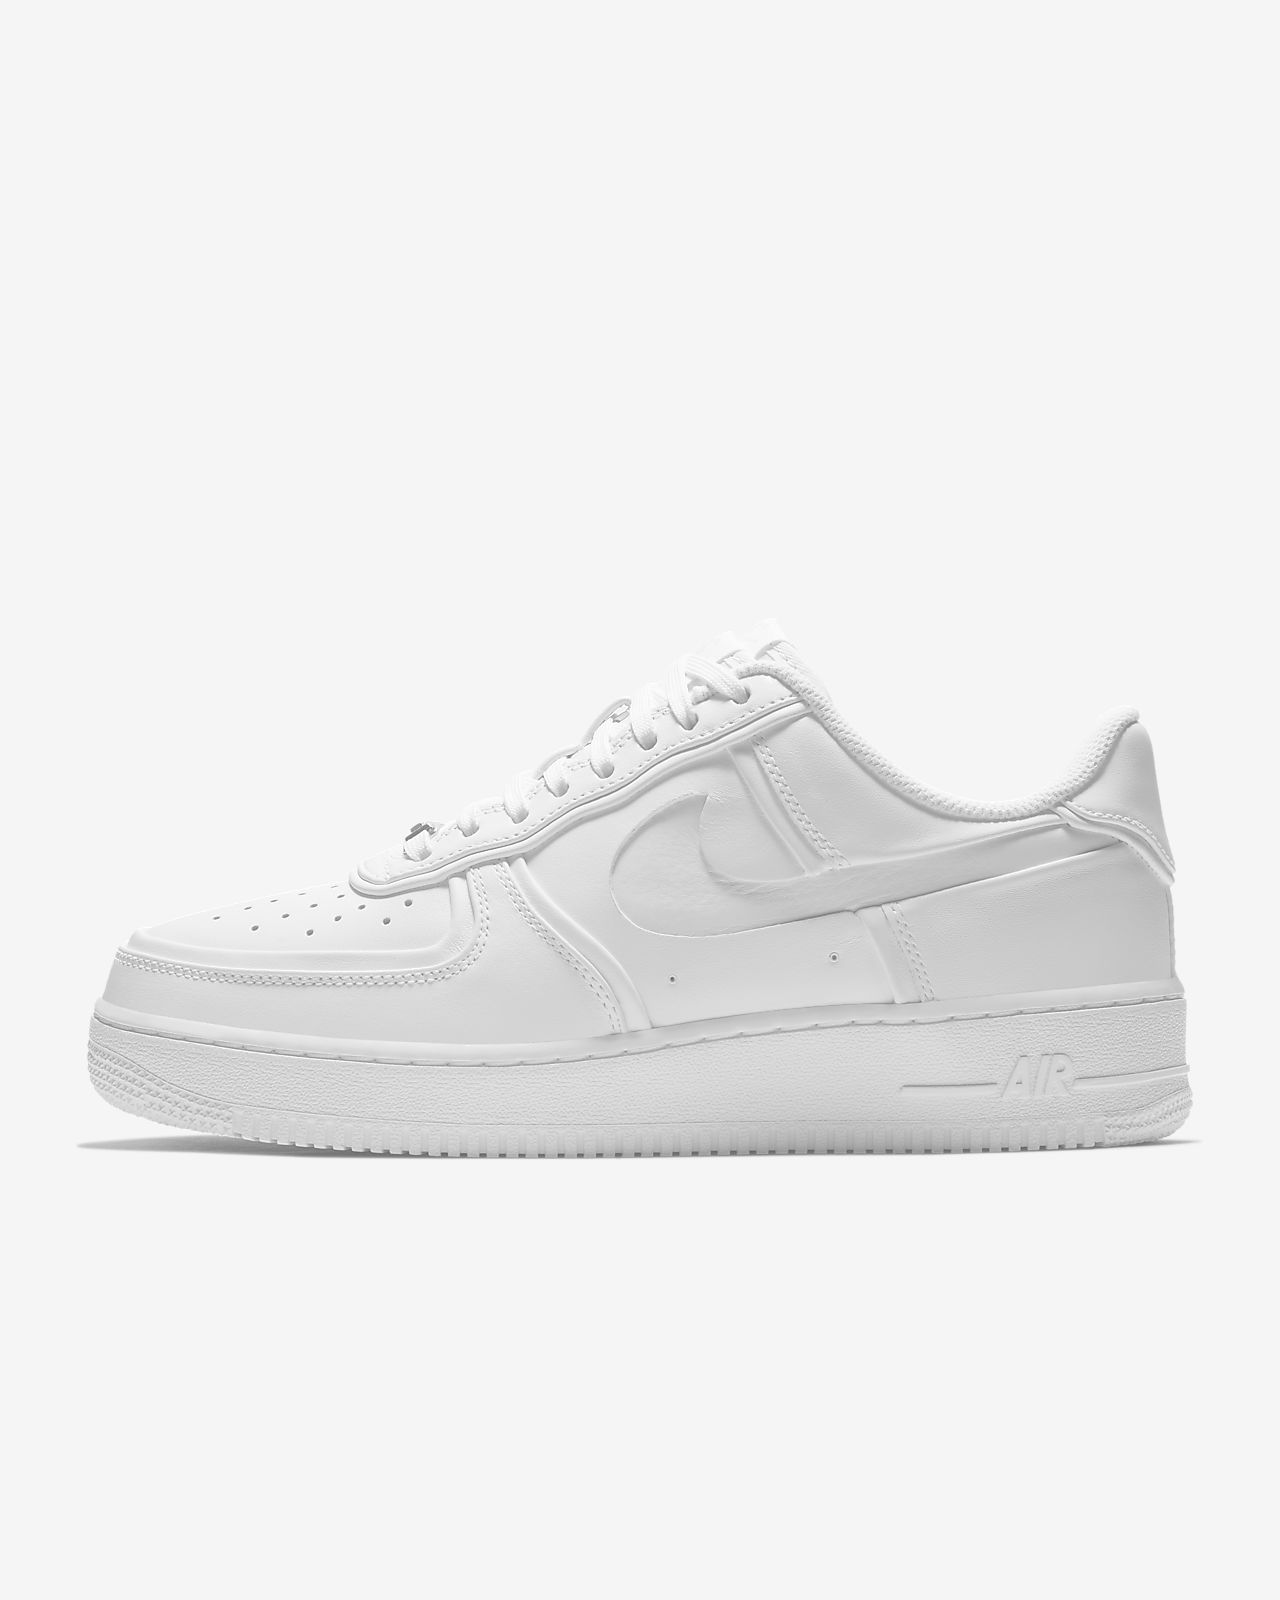 mens nike air force 1 white